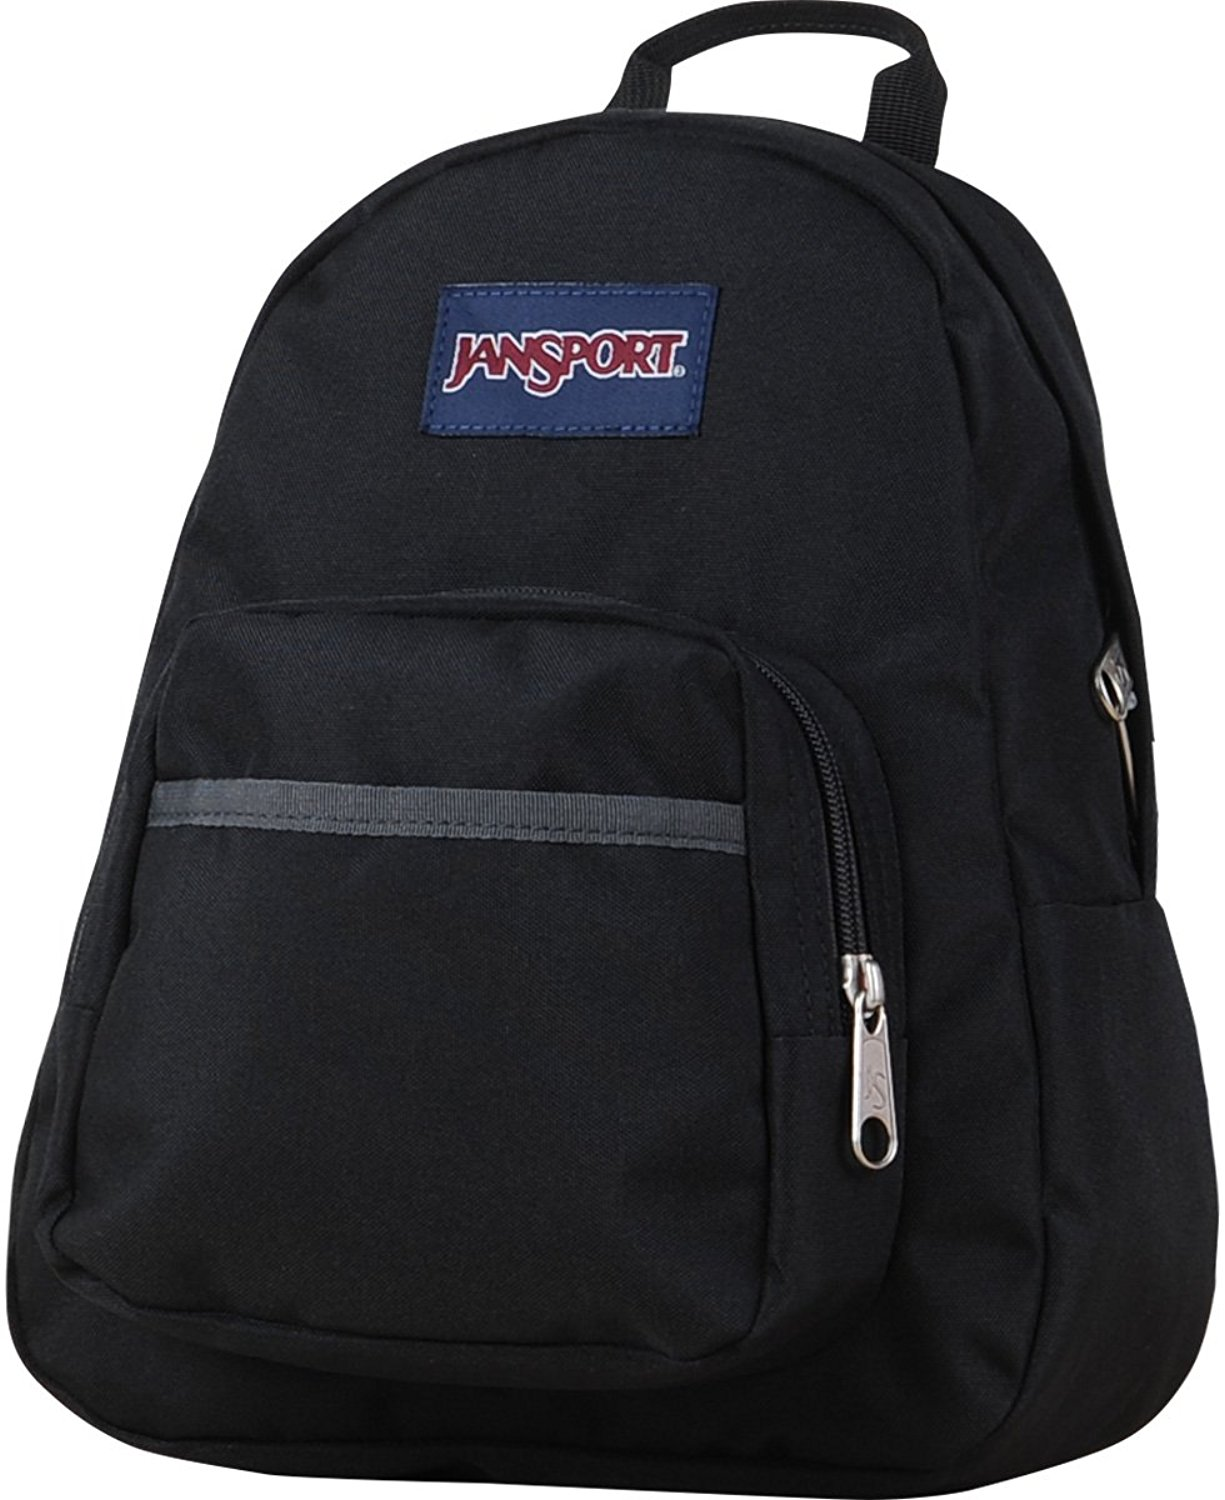 Jansport Half Pint Backpack - Black - JS00TDH6008